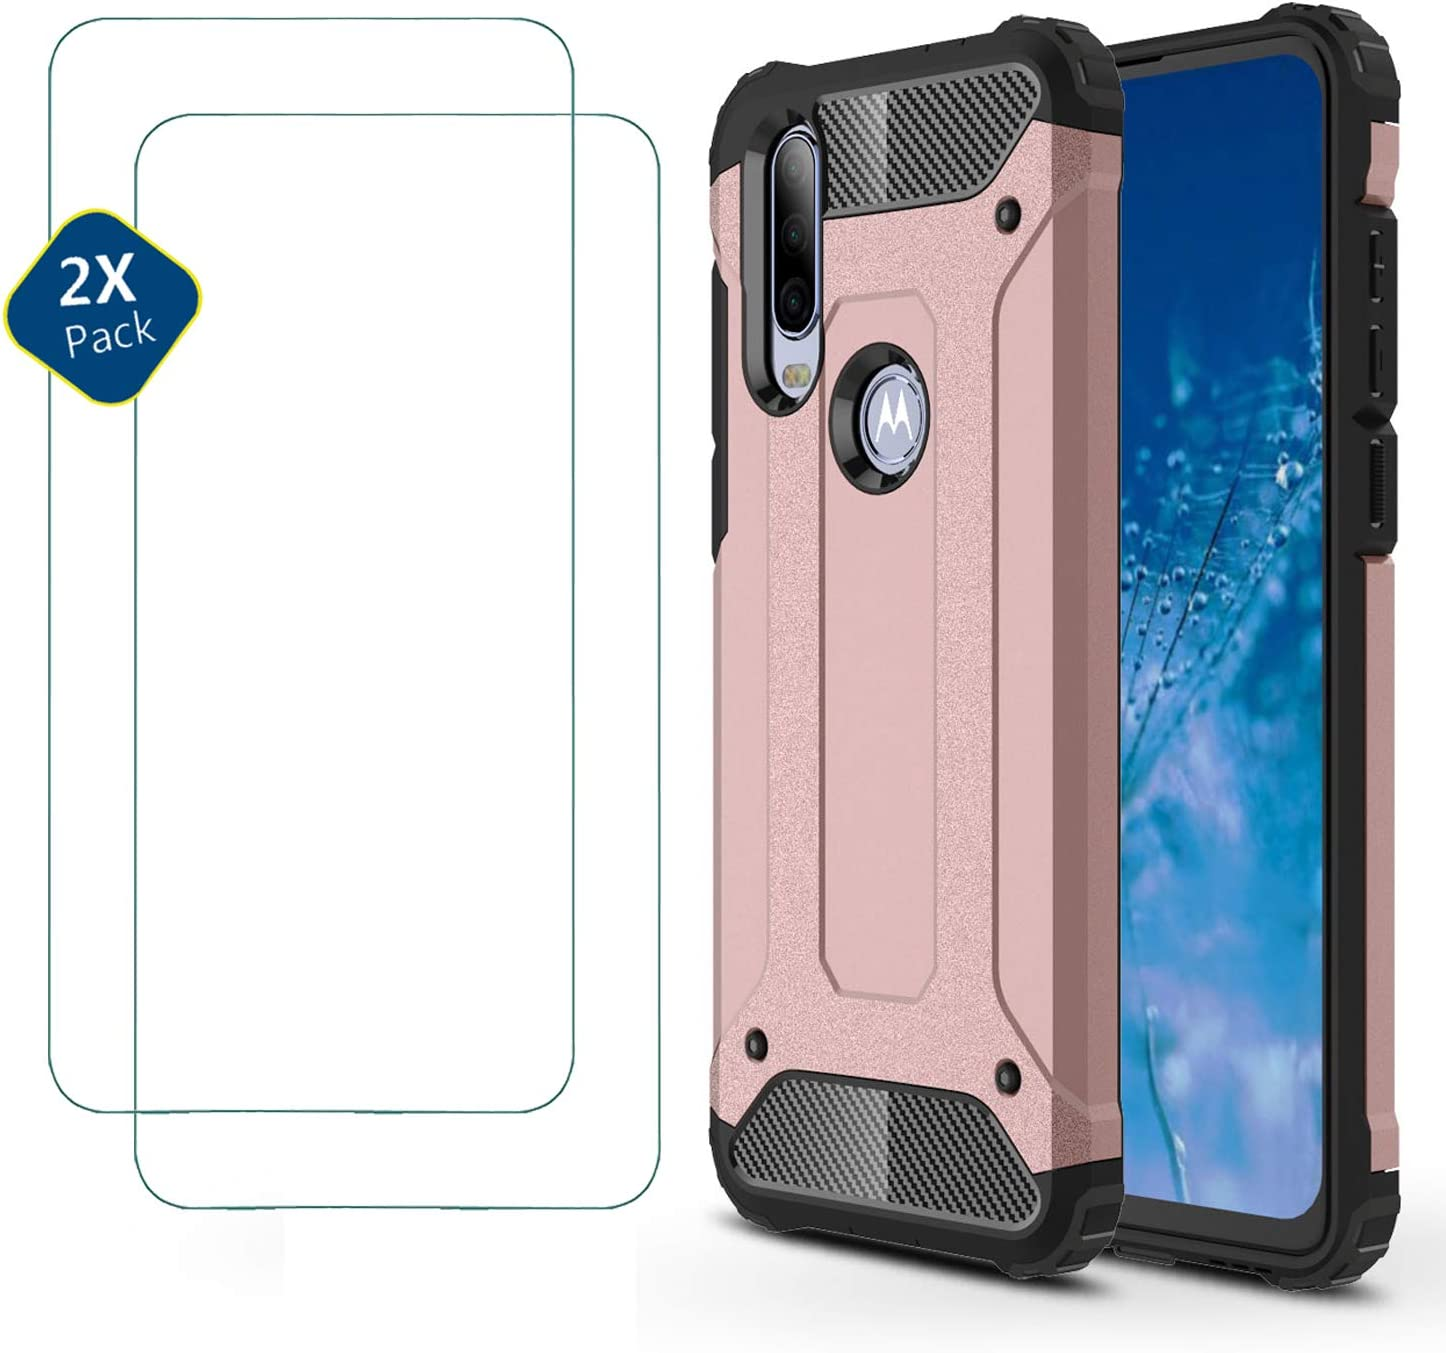 2 Pack Screen Protector for Motorola One Action Rugged four-corner airbag drop-proof phone case for Motorola One Action HUUH Case Black